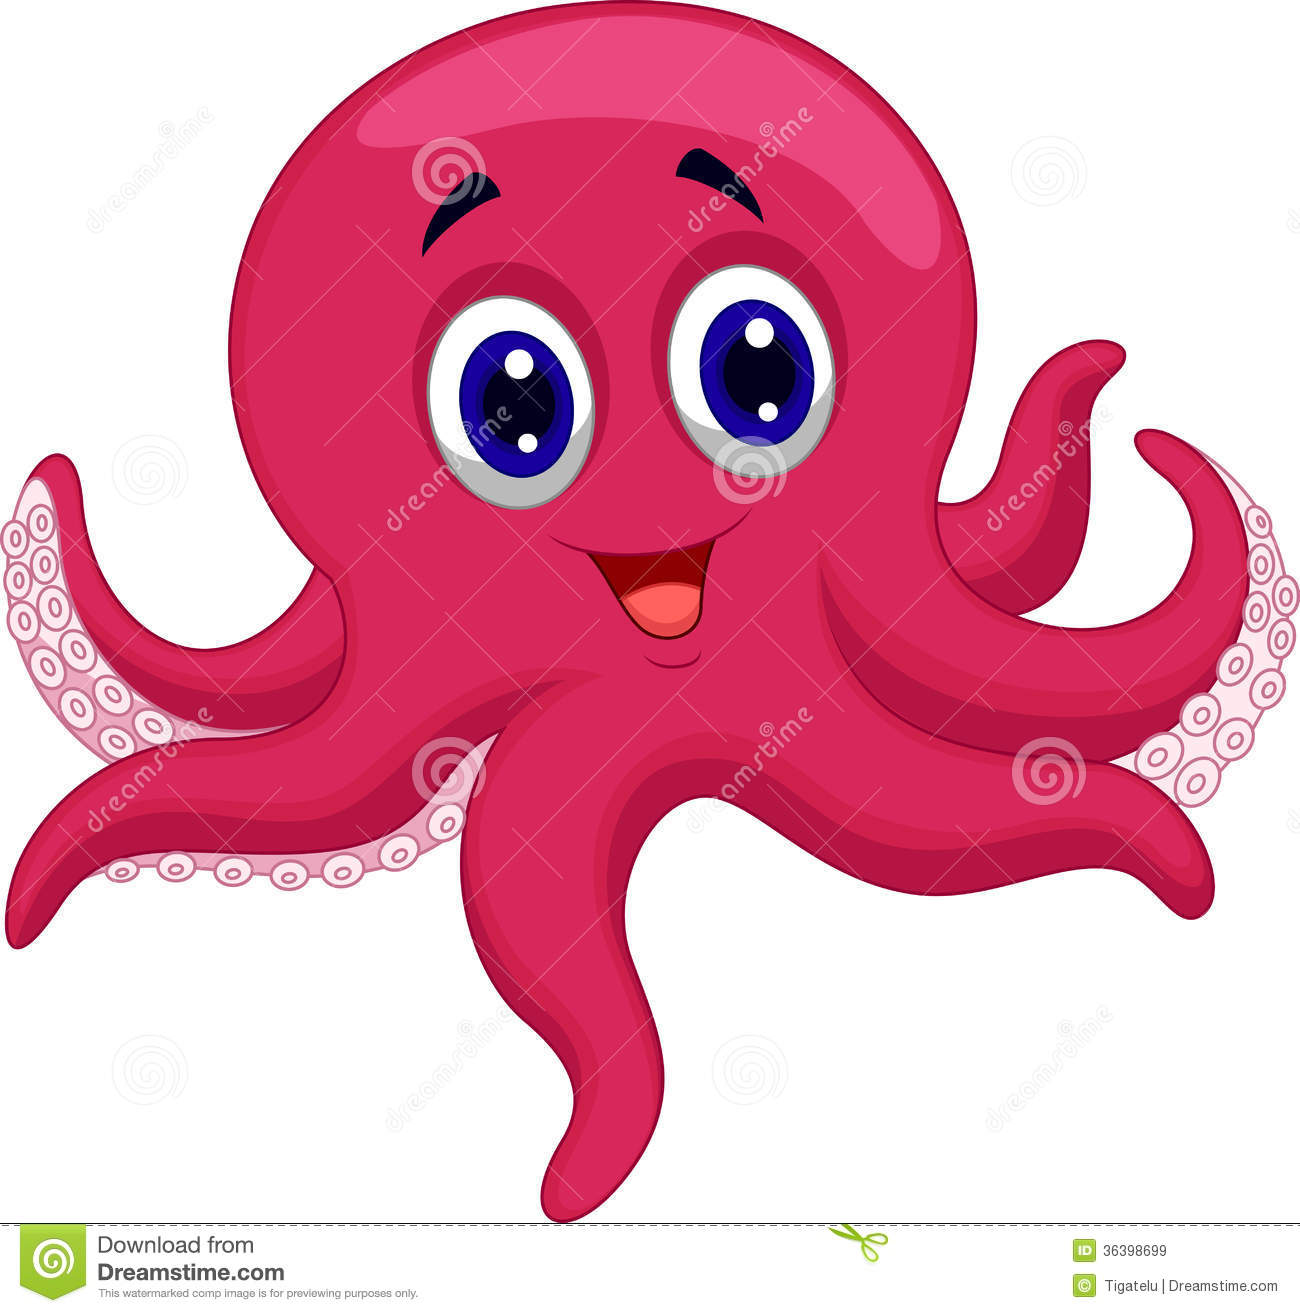 Octopus Cartoon Royalty Free Stock Images - Image: 36398699 Octopus Cartoon Images